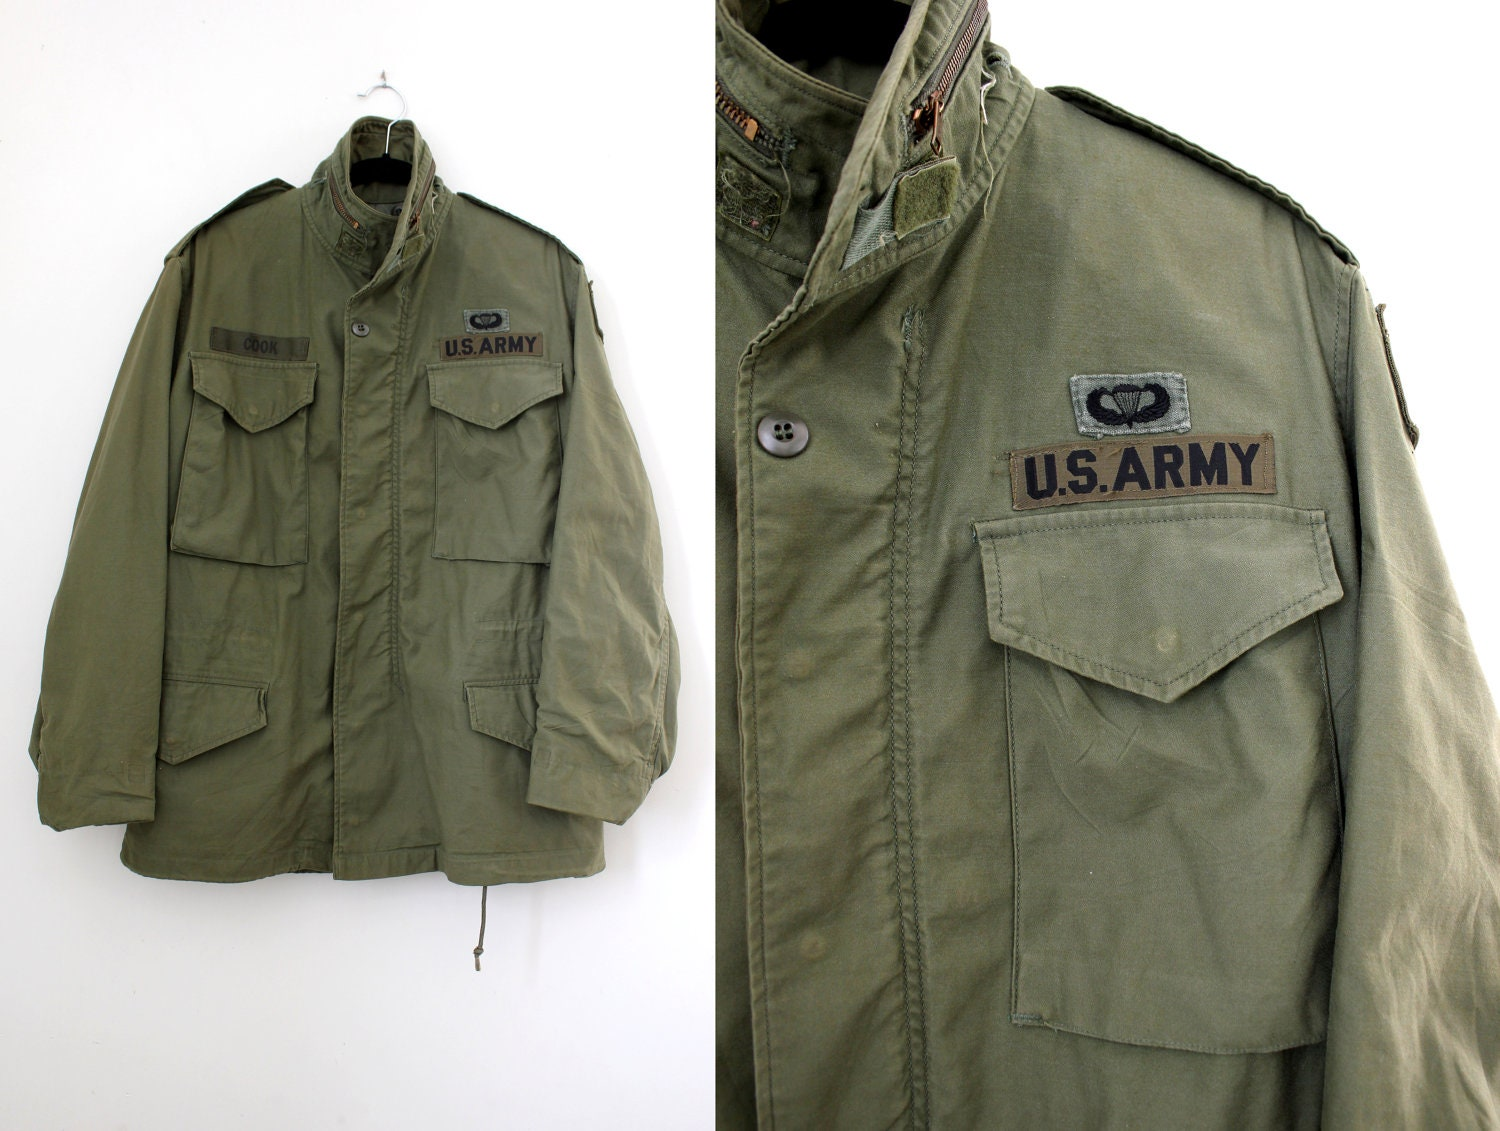 If you are active-duty US Military, please state so when ordering these jackets and we will include a free piece of Velcro for your name tag. It will be placed inside one of the pockets for you to sew onto your jacket.